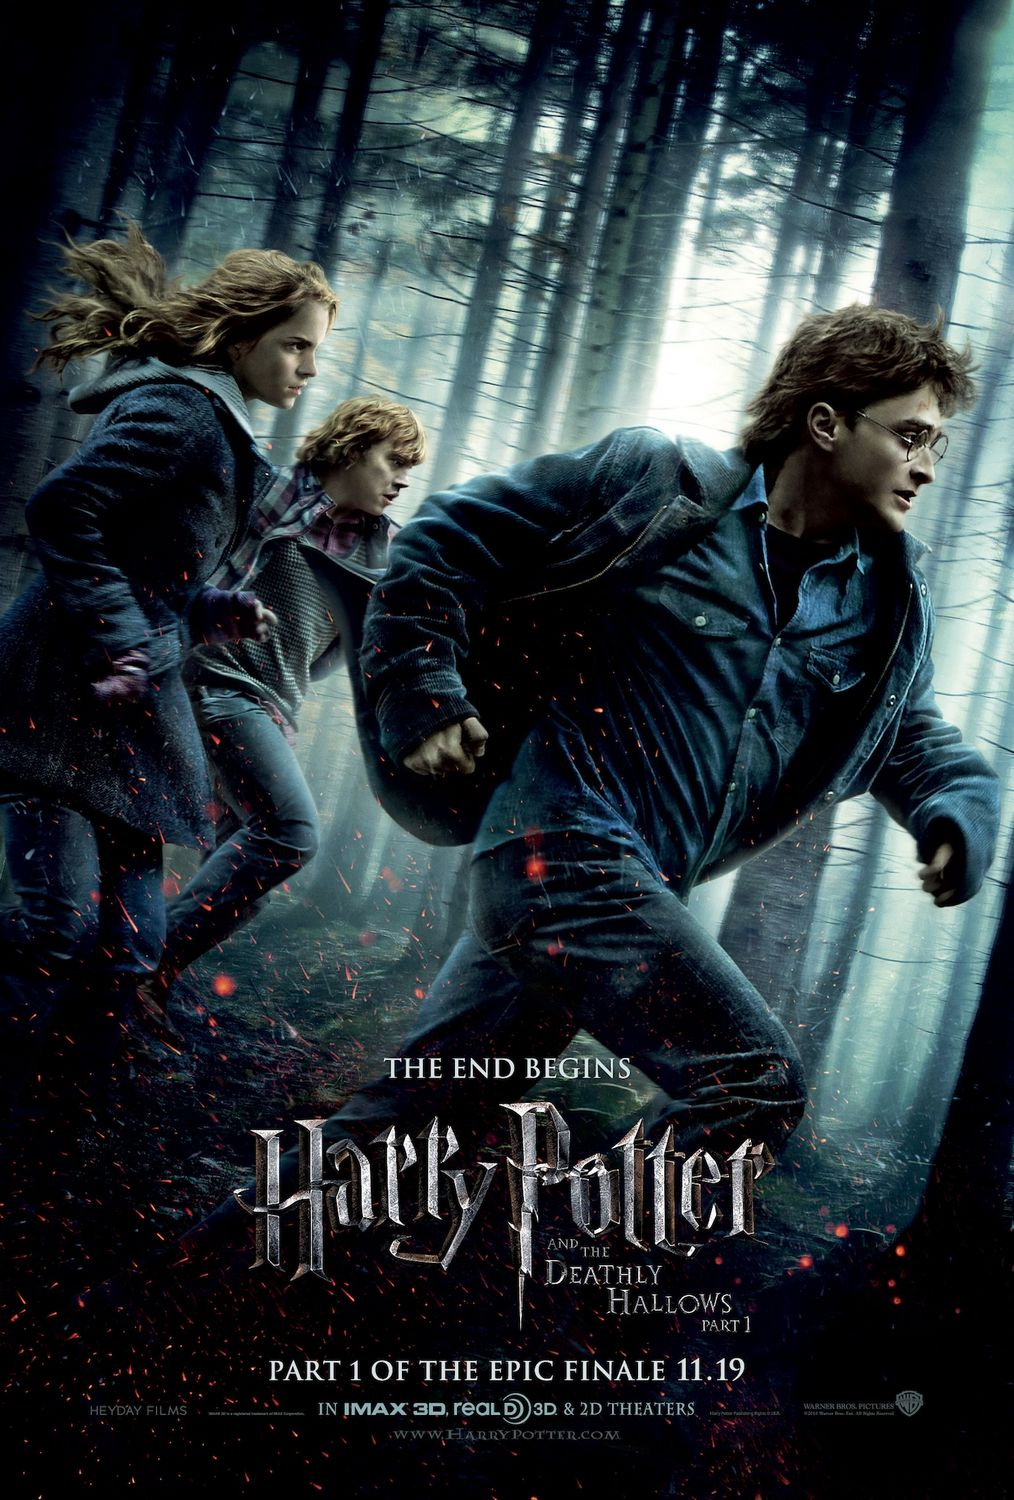 Harry potter and deathly hallows game pc crack download in description bingu